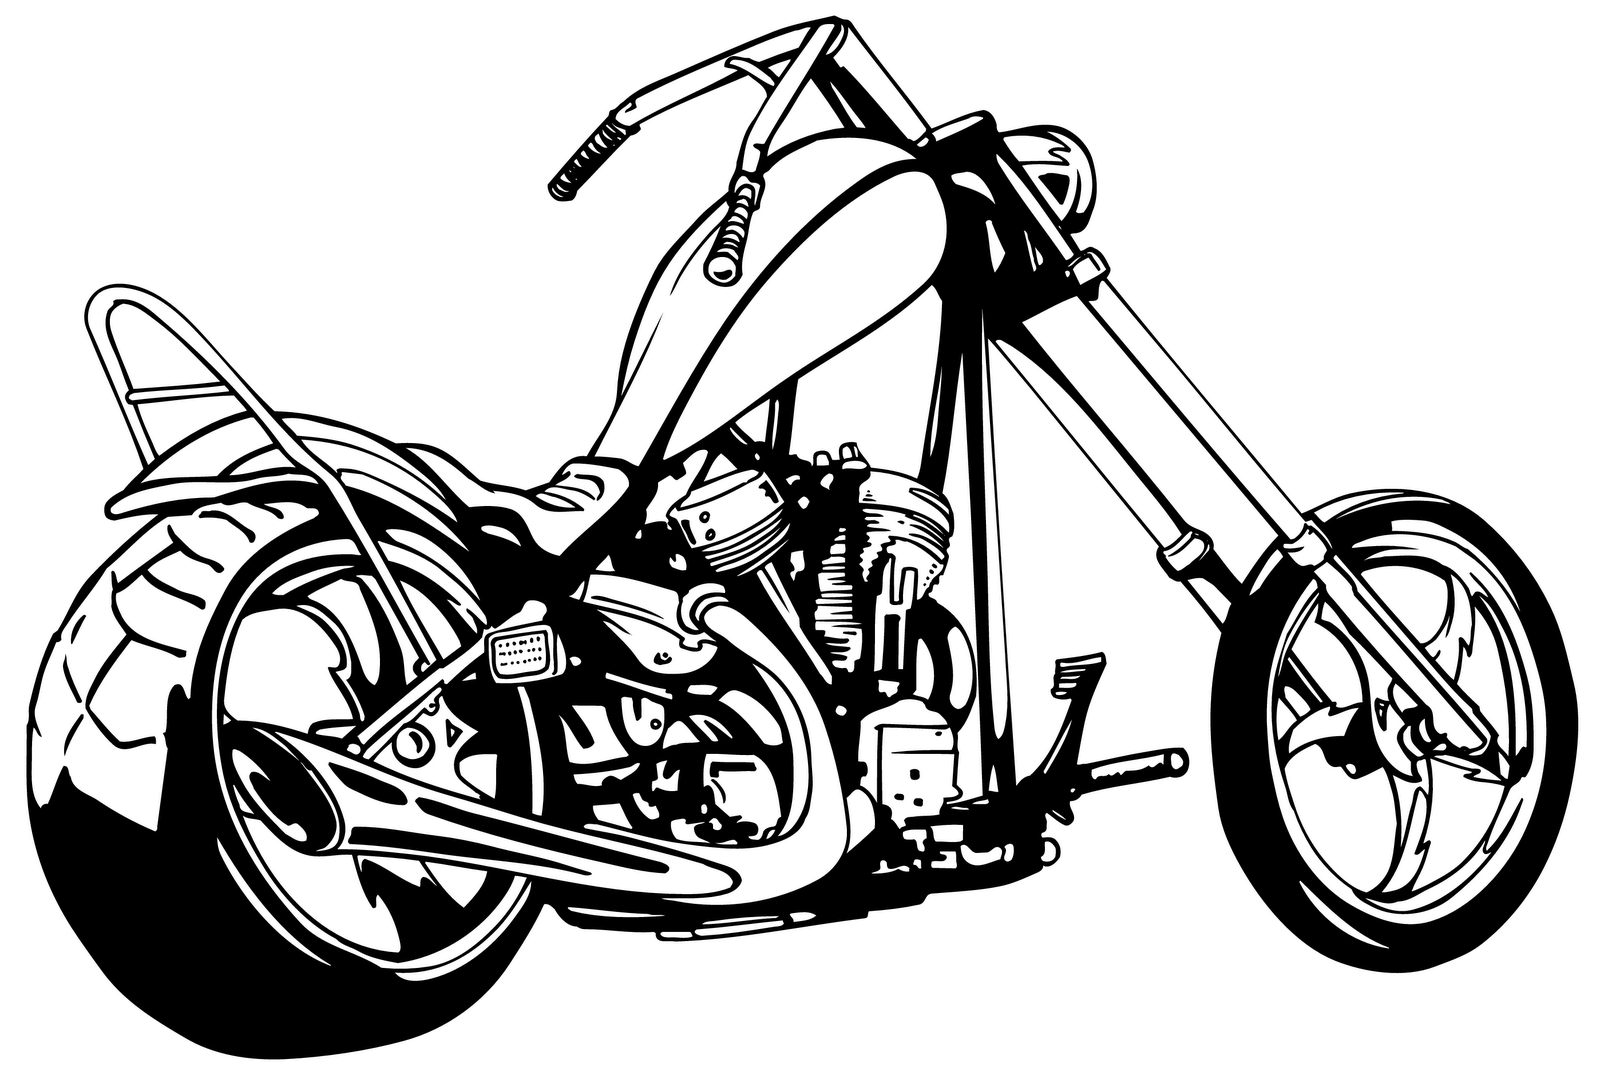 Hot motorcycle clipart picture black and white library Free Free Motorcycle Clipart, Download Free Clip Art, Free Clip Art ... picture black and white library